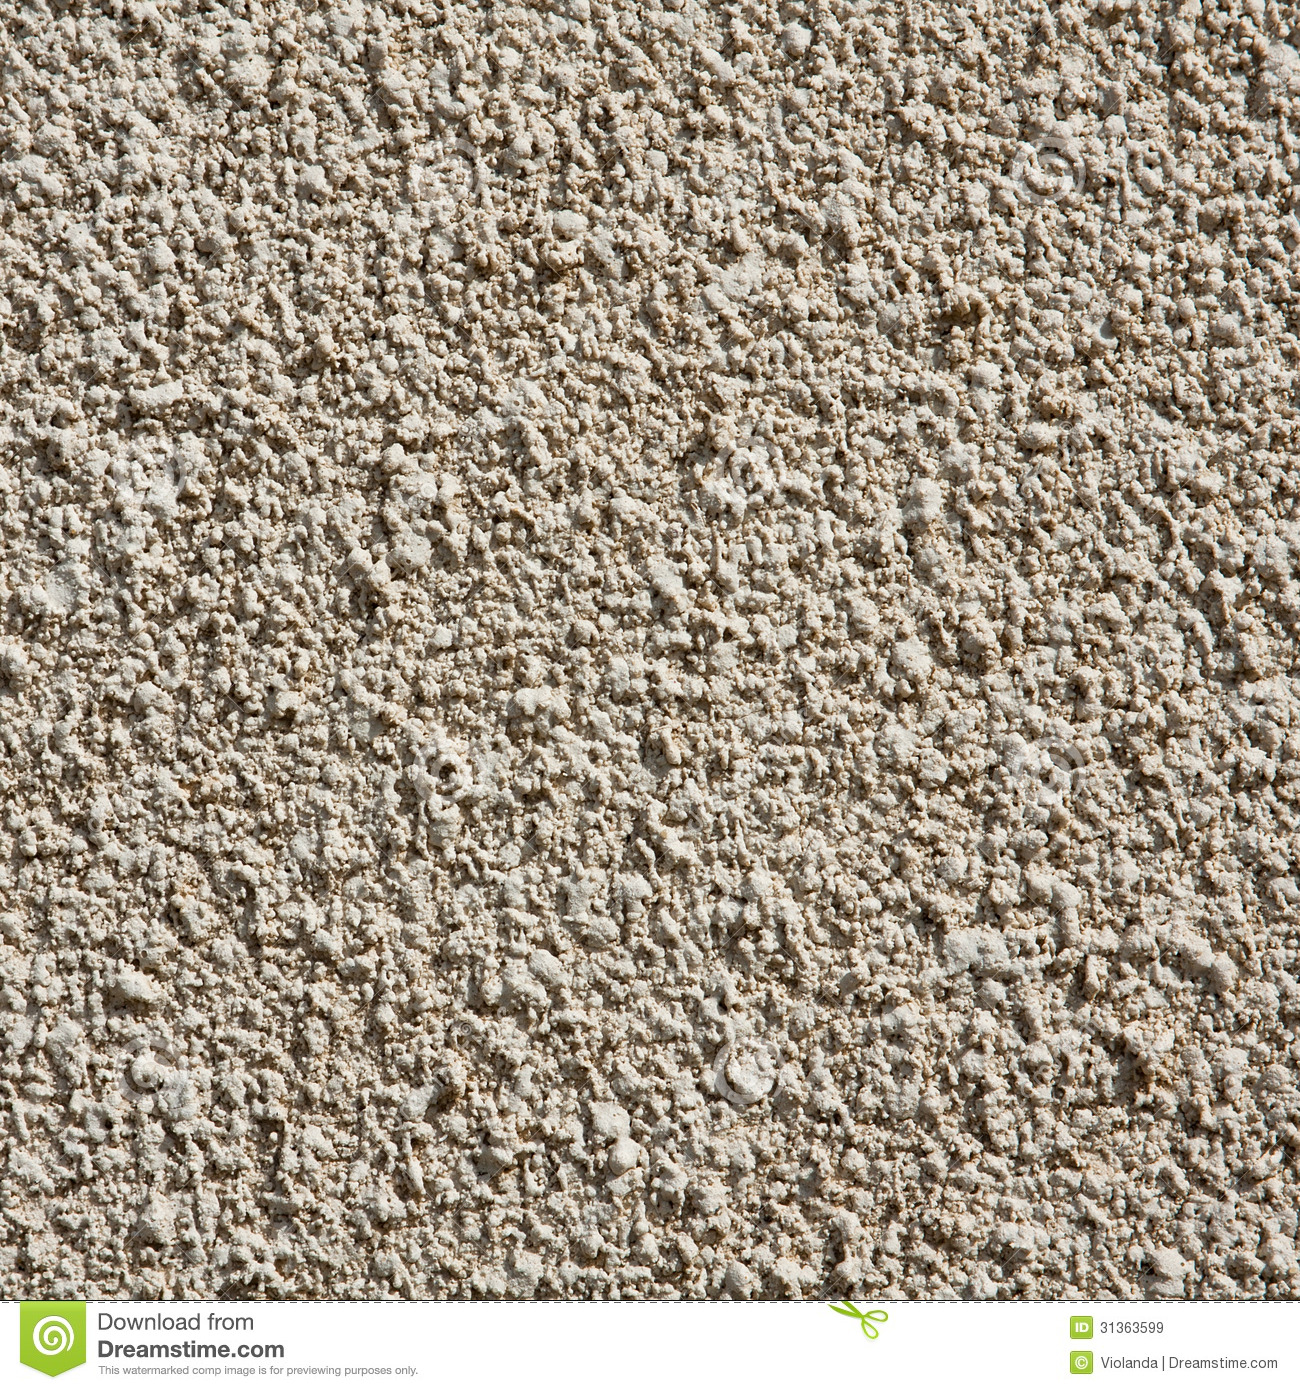 Different Wall Textures Texture Stone Royalty Free Stock Images Image 31363599